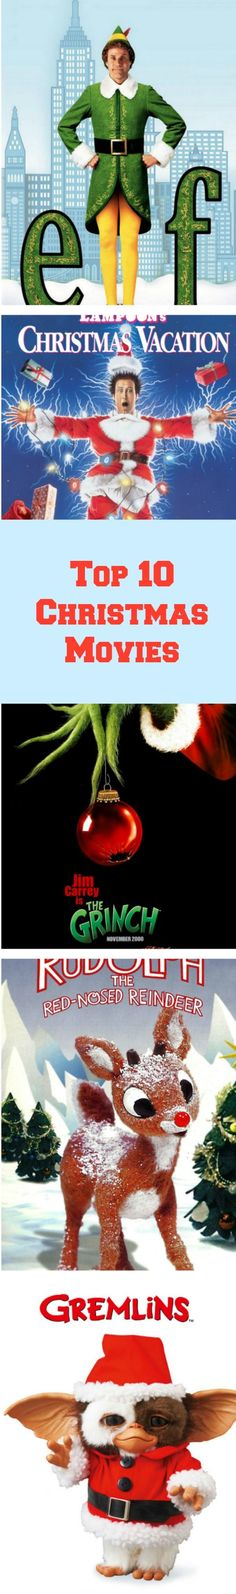 Top 10 best Christmas stories of all time. Click here to see our list of favorite Christmas movies http://www.celluloiddiaries.com/2012/12/favorite-christmas-stories.html (best Christmas stories of all time, favorite Christmas movies, Gremlins, Rudolph the Red-Nosed Reindeer, How the Grinch Stole Christmas, 'Twas the Night Before Christmas, Elf, The Nightmare Before Christmas, National Lampoon's Christmas Vacation, It's a Wonderful Life, A Christmas Carol, A Christmas Story)